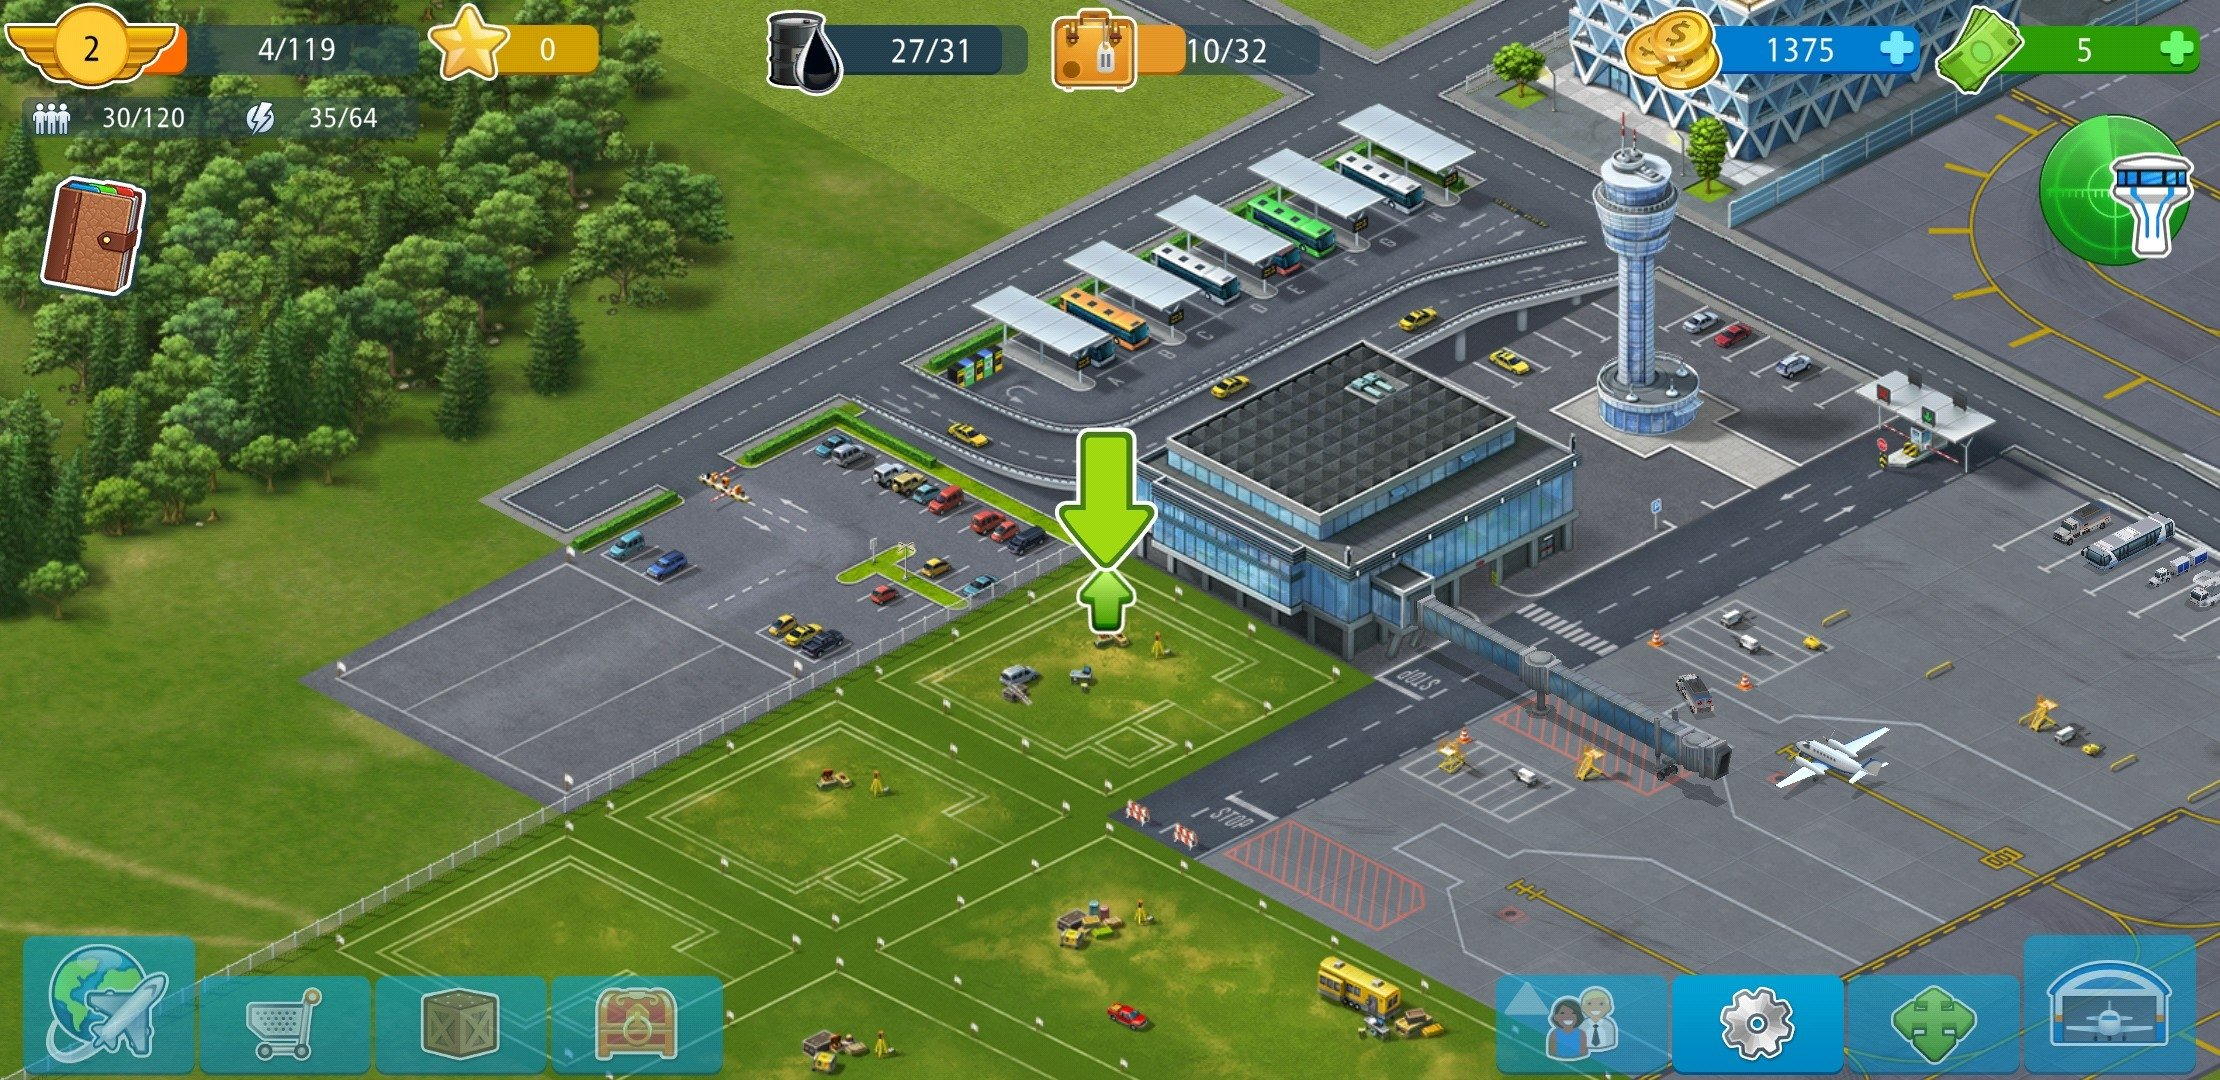 Airport City Android image 8